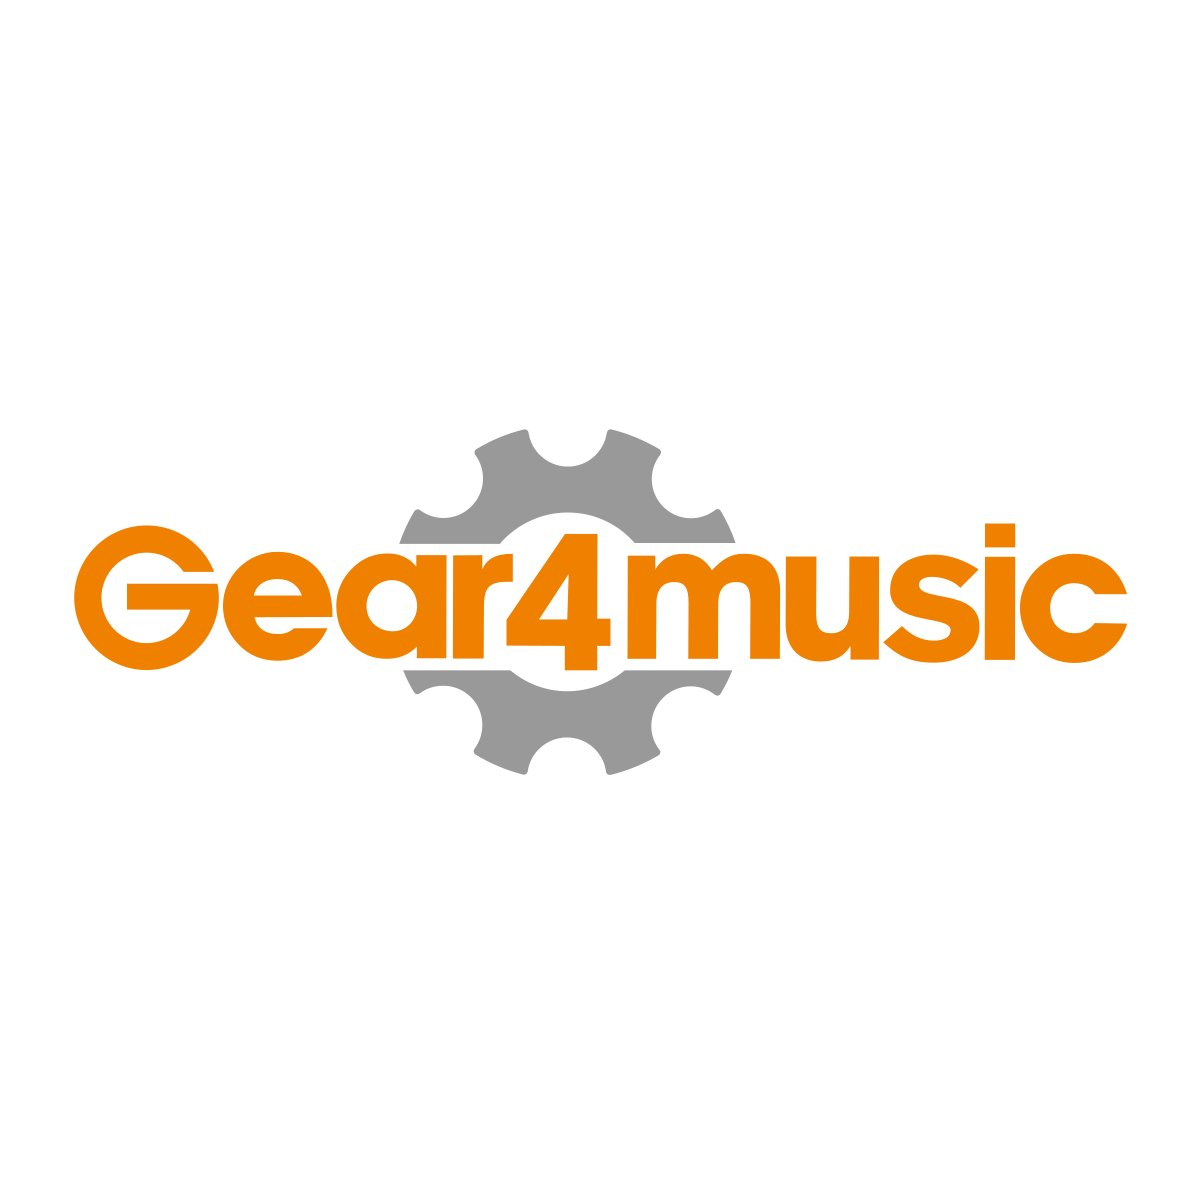 Fagot Rosedale, Gear4music